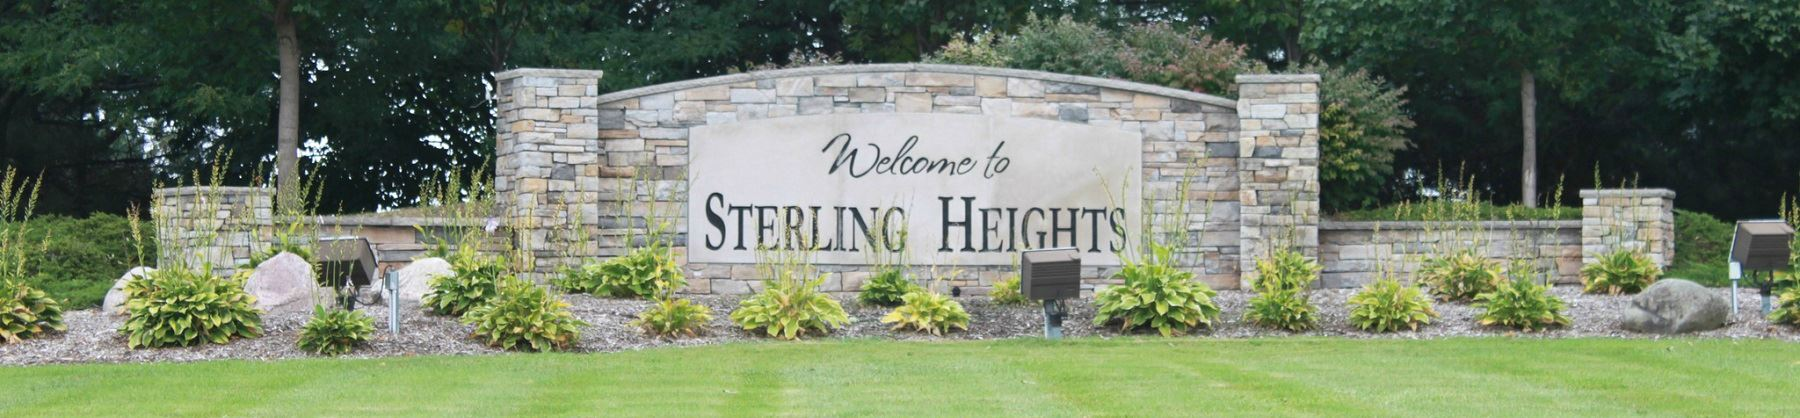 Photo of the entrance to sterling heights michigan